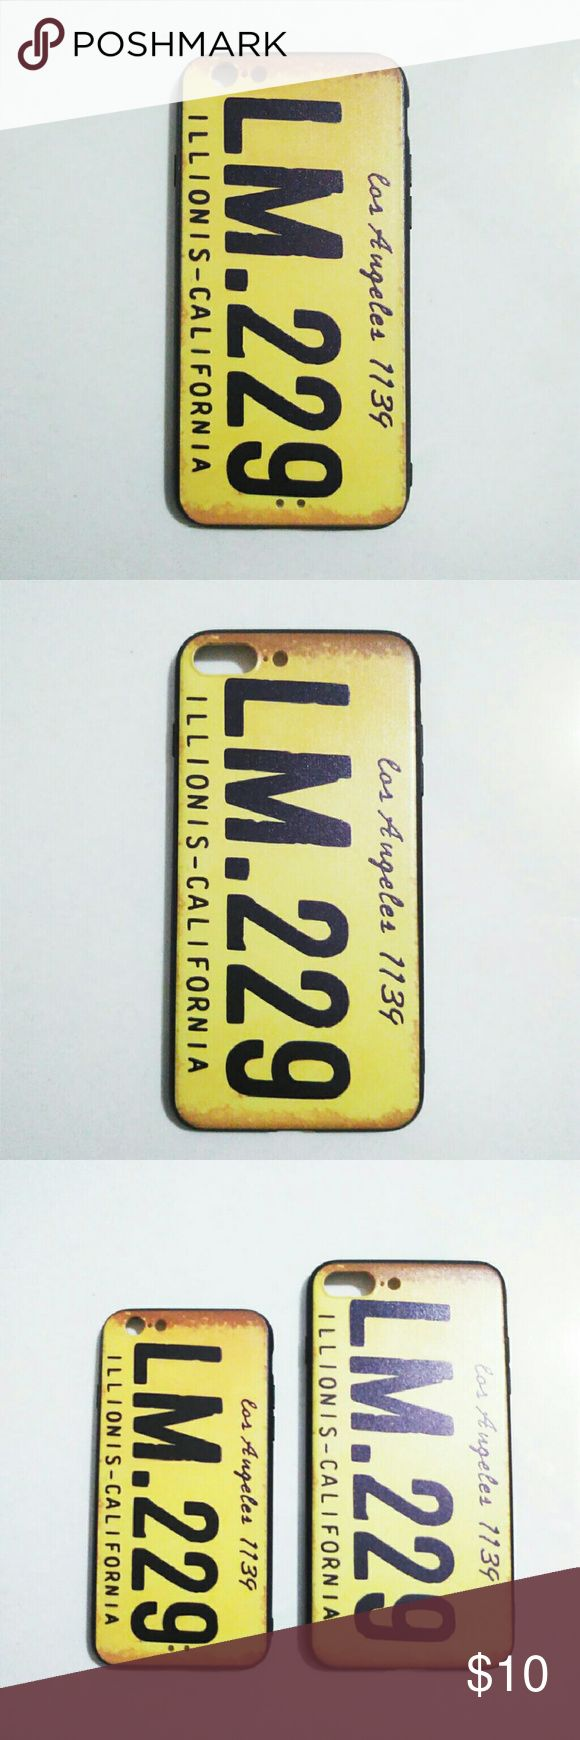 iphone case NEW Style iPhone Case Innovative Design Beautiful and Fashion  THIS IPHONE CASE AVAILABLE FOR iPhone 6/6S iPhone 6/6S Plus iPhone 7 iPhone 7 Plus  Check my store for MORE OPTIONS: Vehicle Number Plate of Los Angeles LM.299  Vehicle Number Plate of Oklahoma FU 724 The Beatles Hollywood Clapperboard Elephant with Standing Ring Other